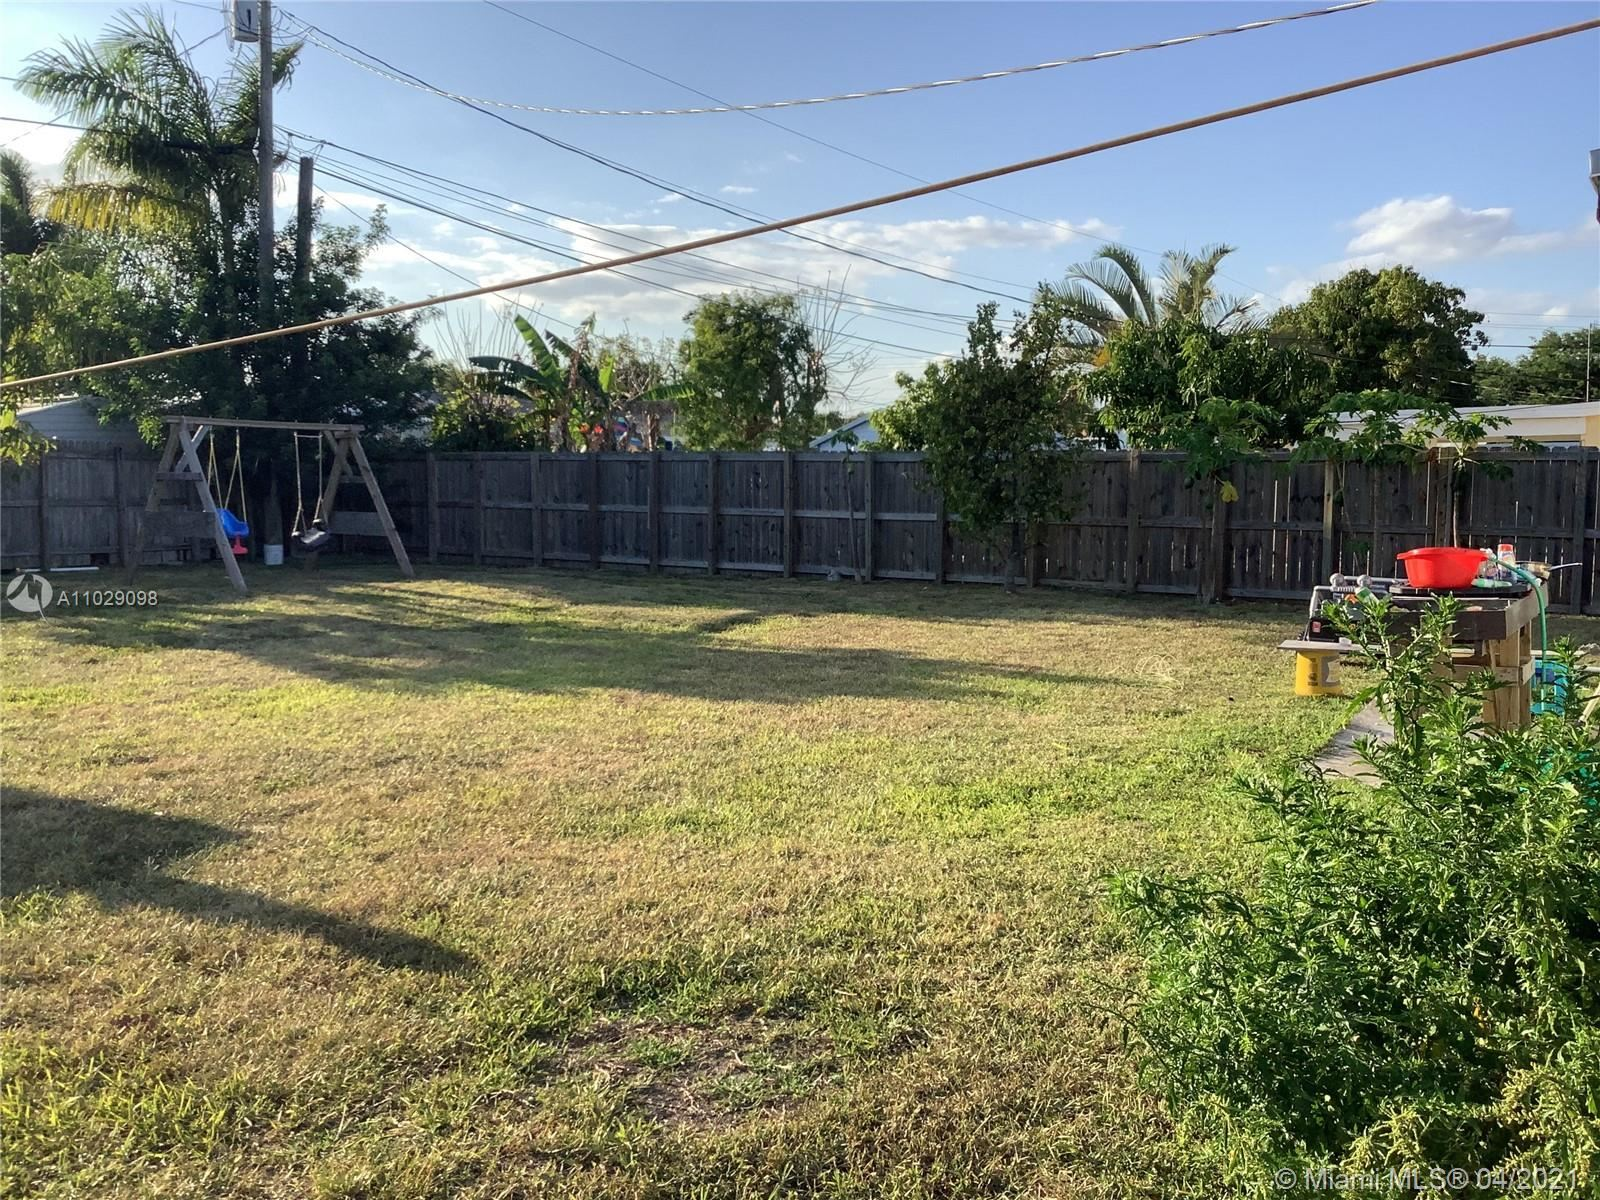 Photo of 30232 SW 172nd Ave, Homestead, FL 33030 (MLS # A11029098)